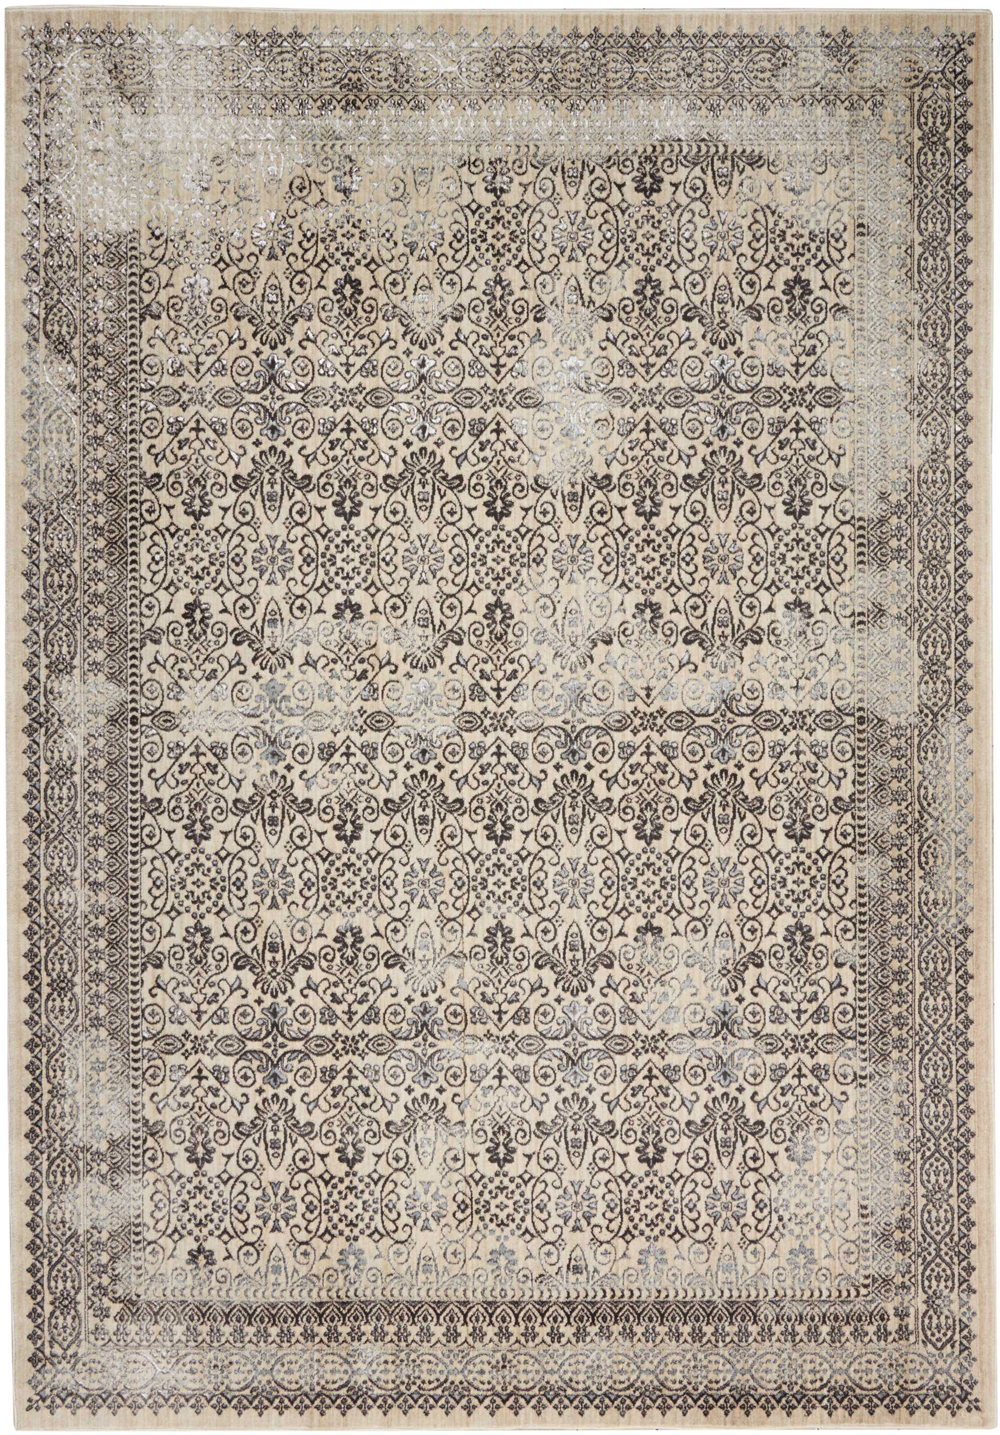 Kathy Ireland KI34 SILVER SCREEN KI342 GREY Rug